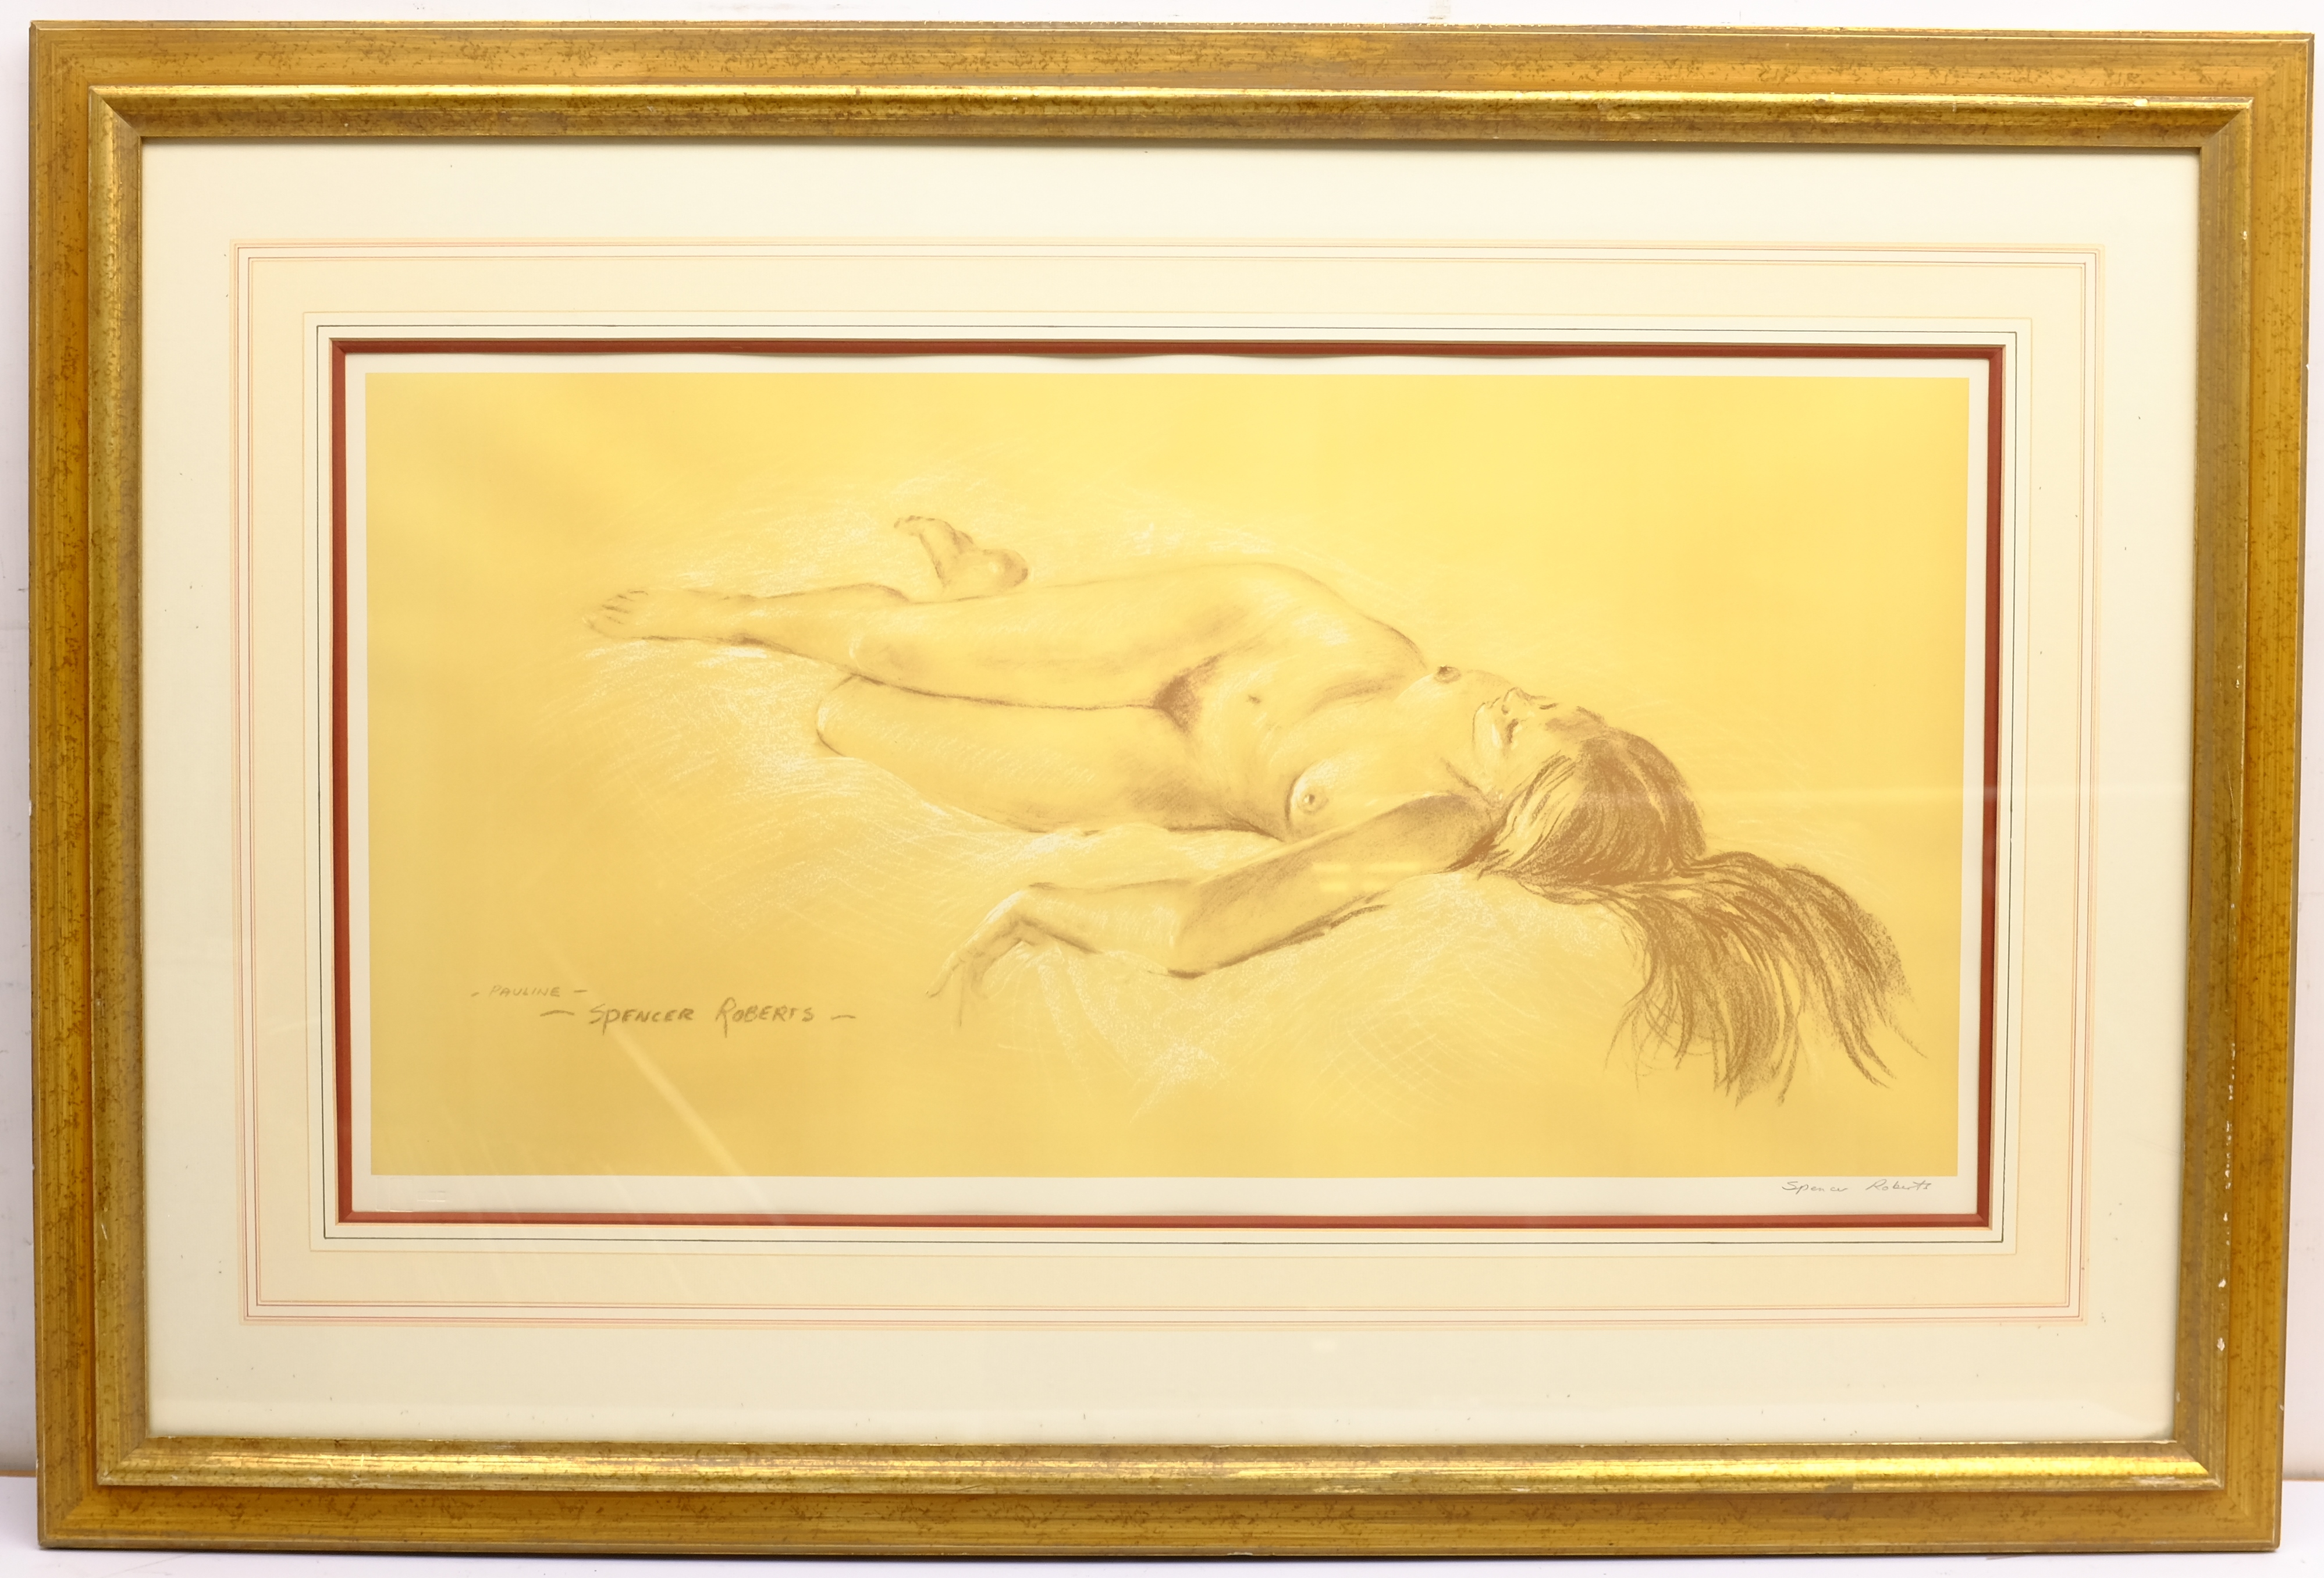 Arthur Spencer Roberts (British 1920-1997): 'Pauline', limited edition print signed in pencil with F - Image 4 of 4